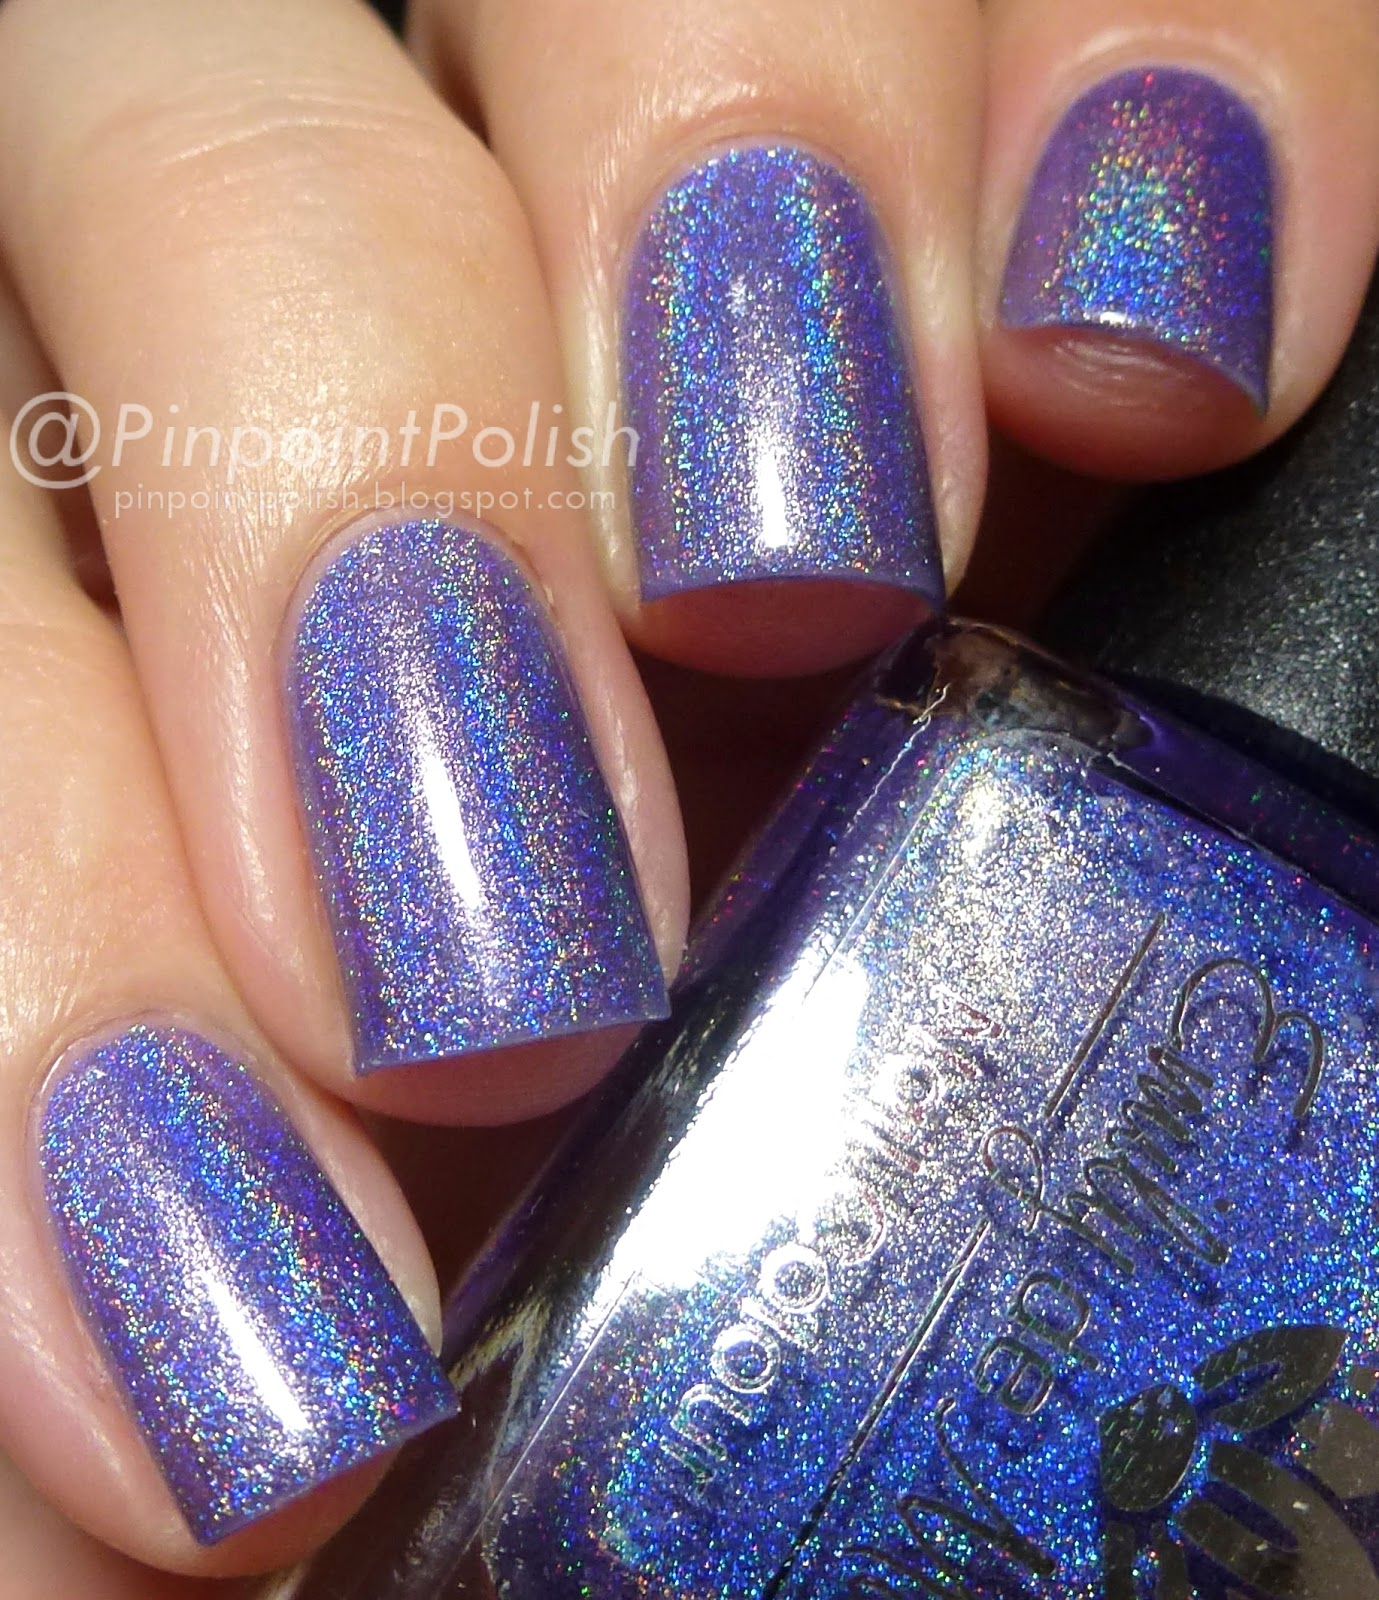 Devotion, Emily de Molly, swatch